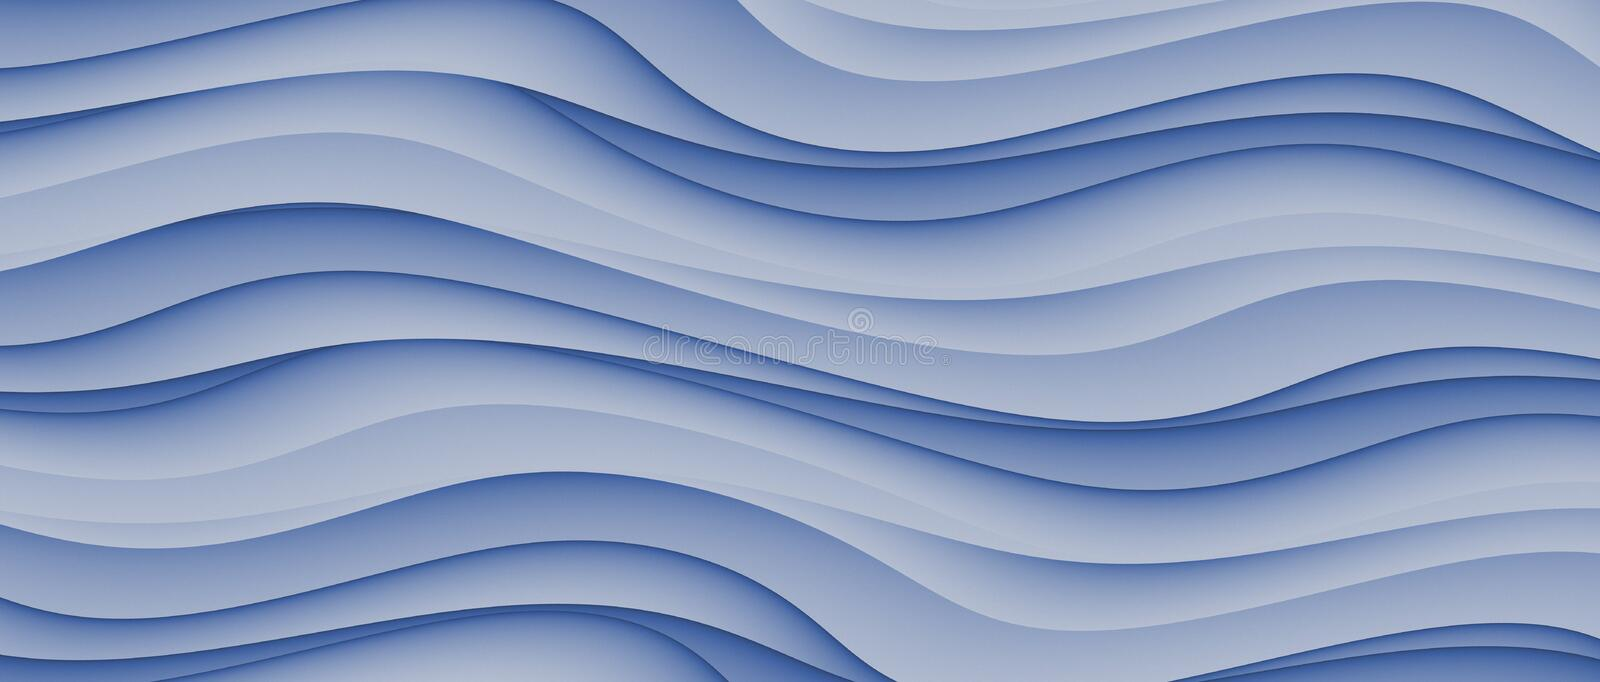 High Resolution Blue Abstract Waves Business Background Design vector illustration